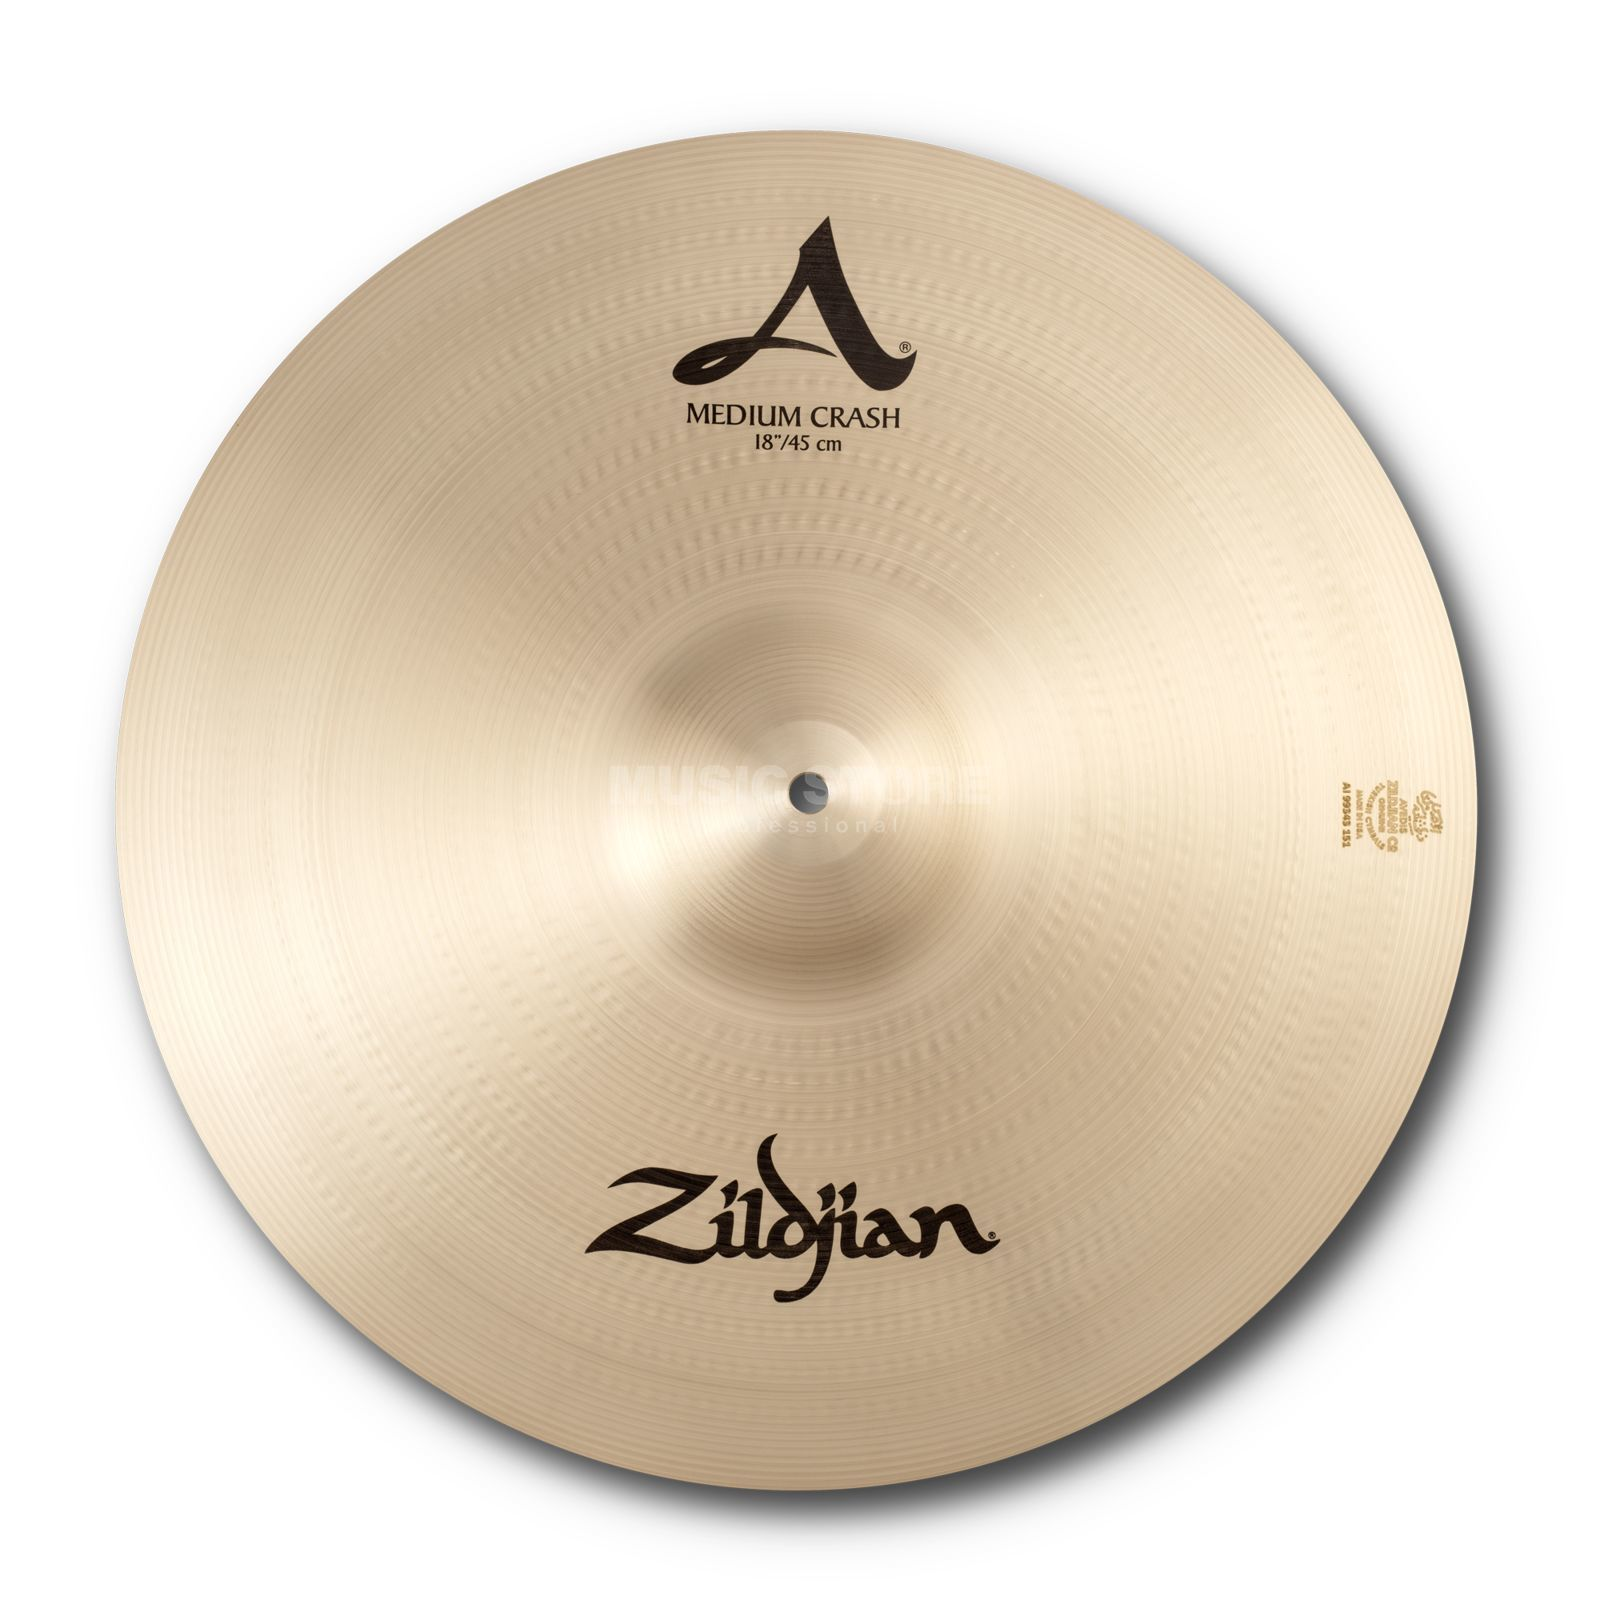 "Zildjian A' Zildjian Medium Crash 18"", Traditional Finish Produktbild"